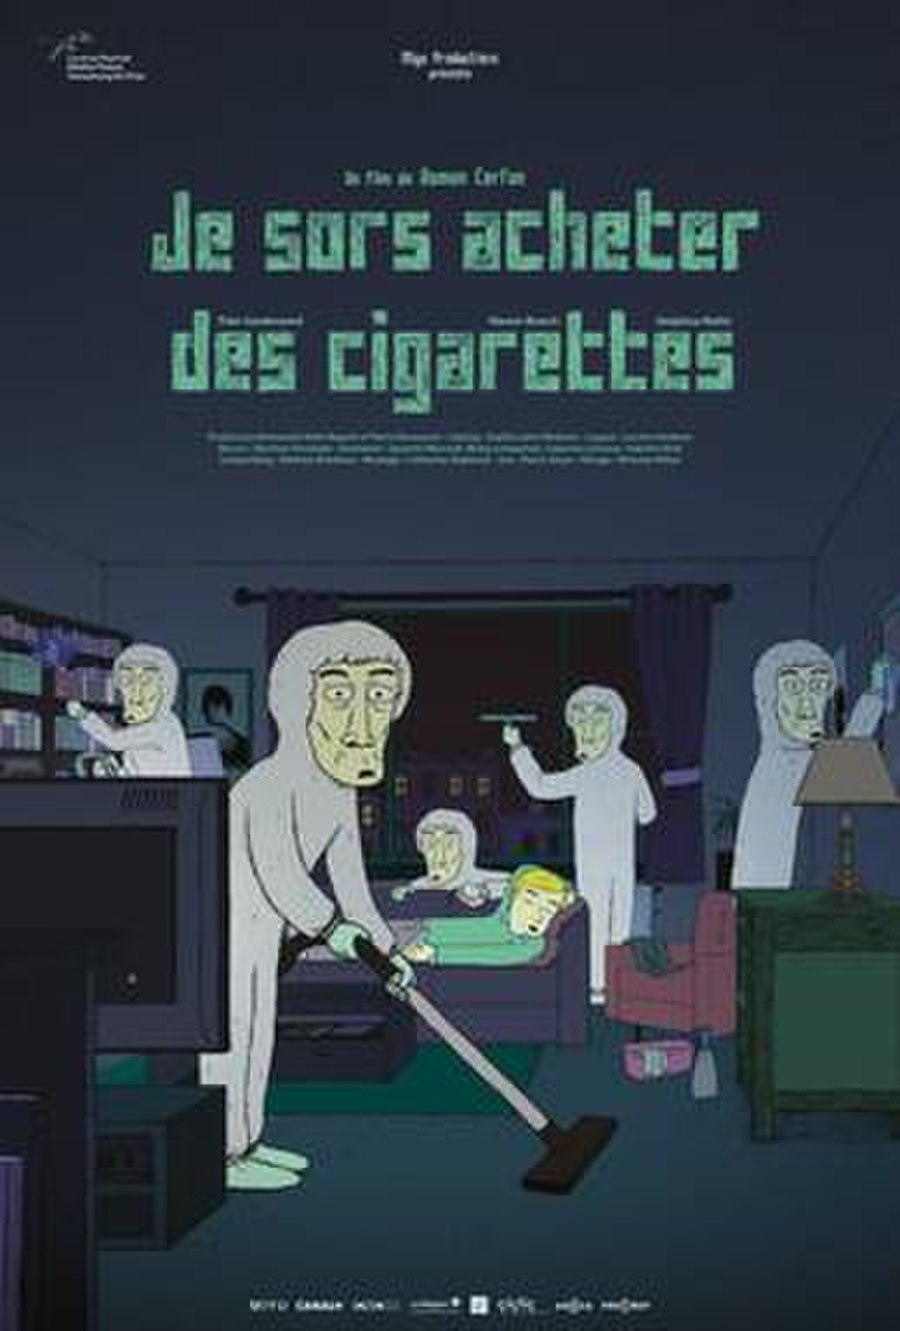 I'm Going Out for Cigarettes